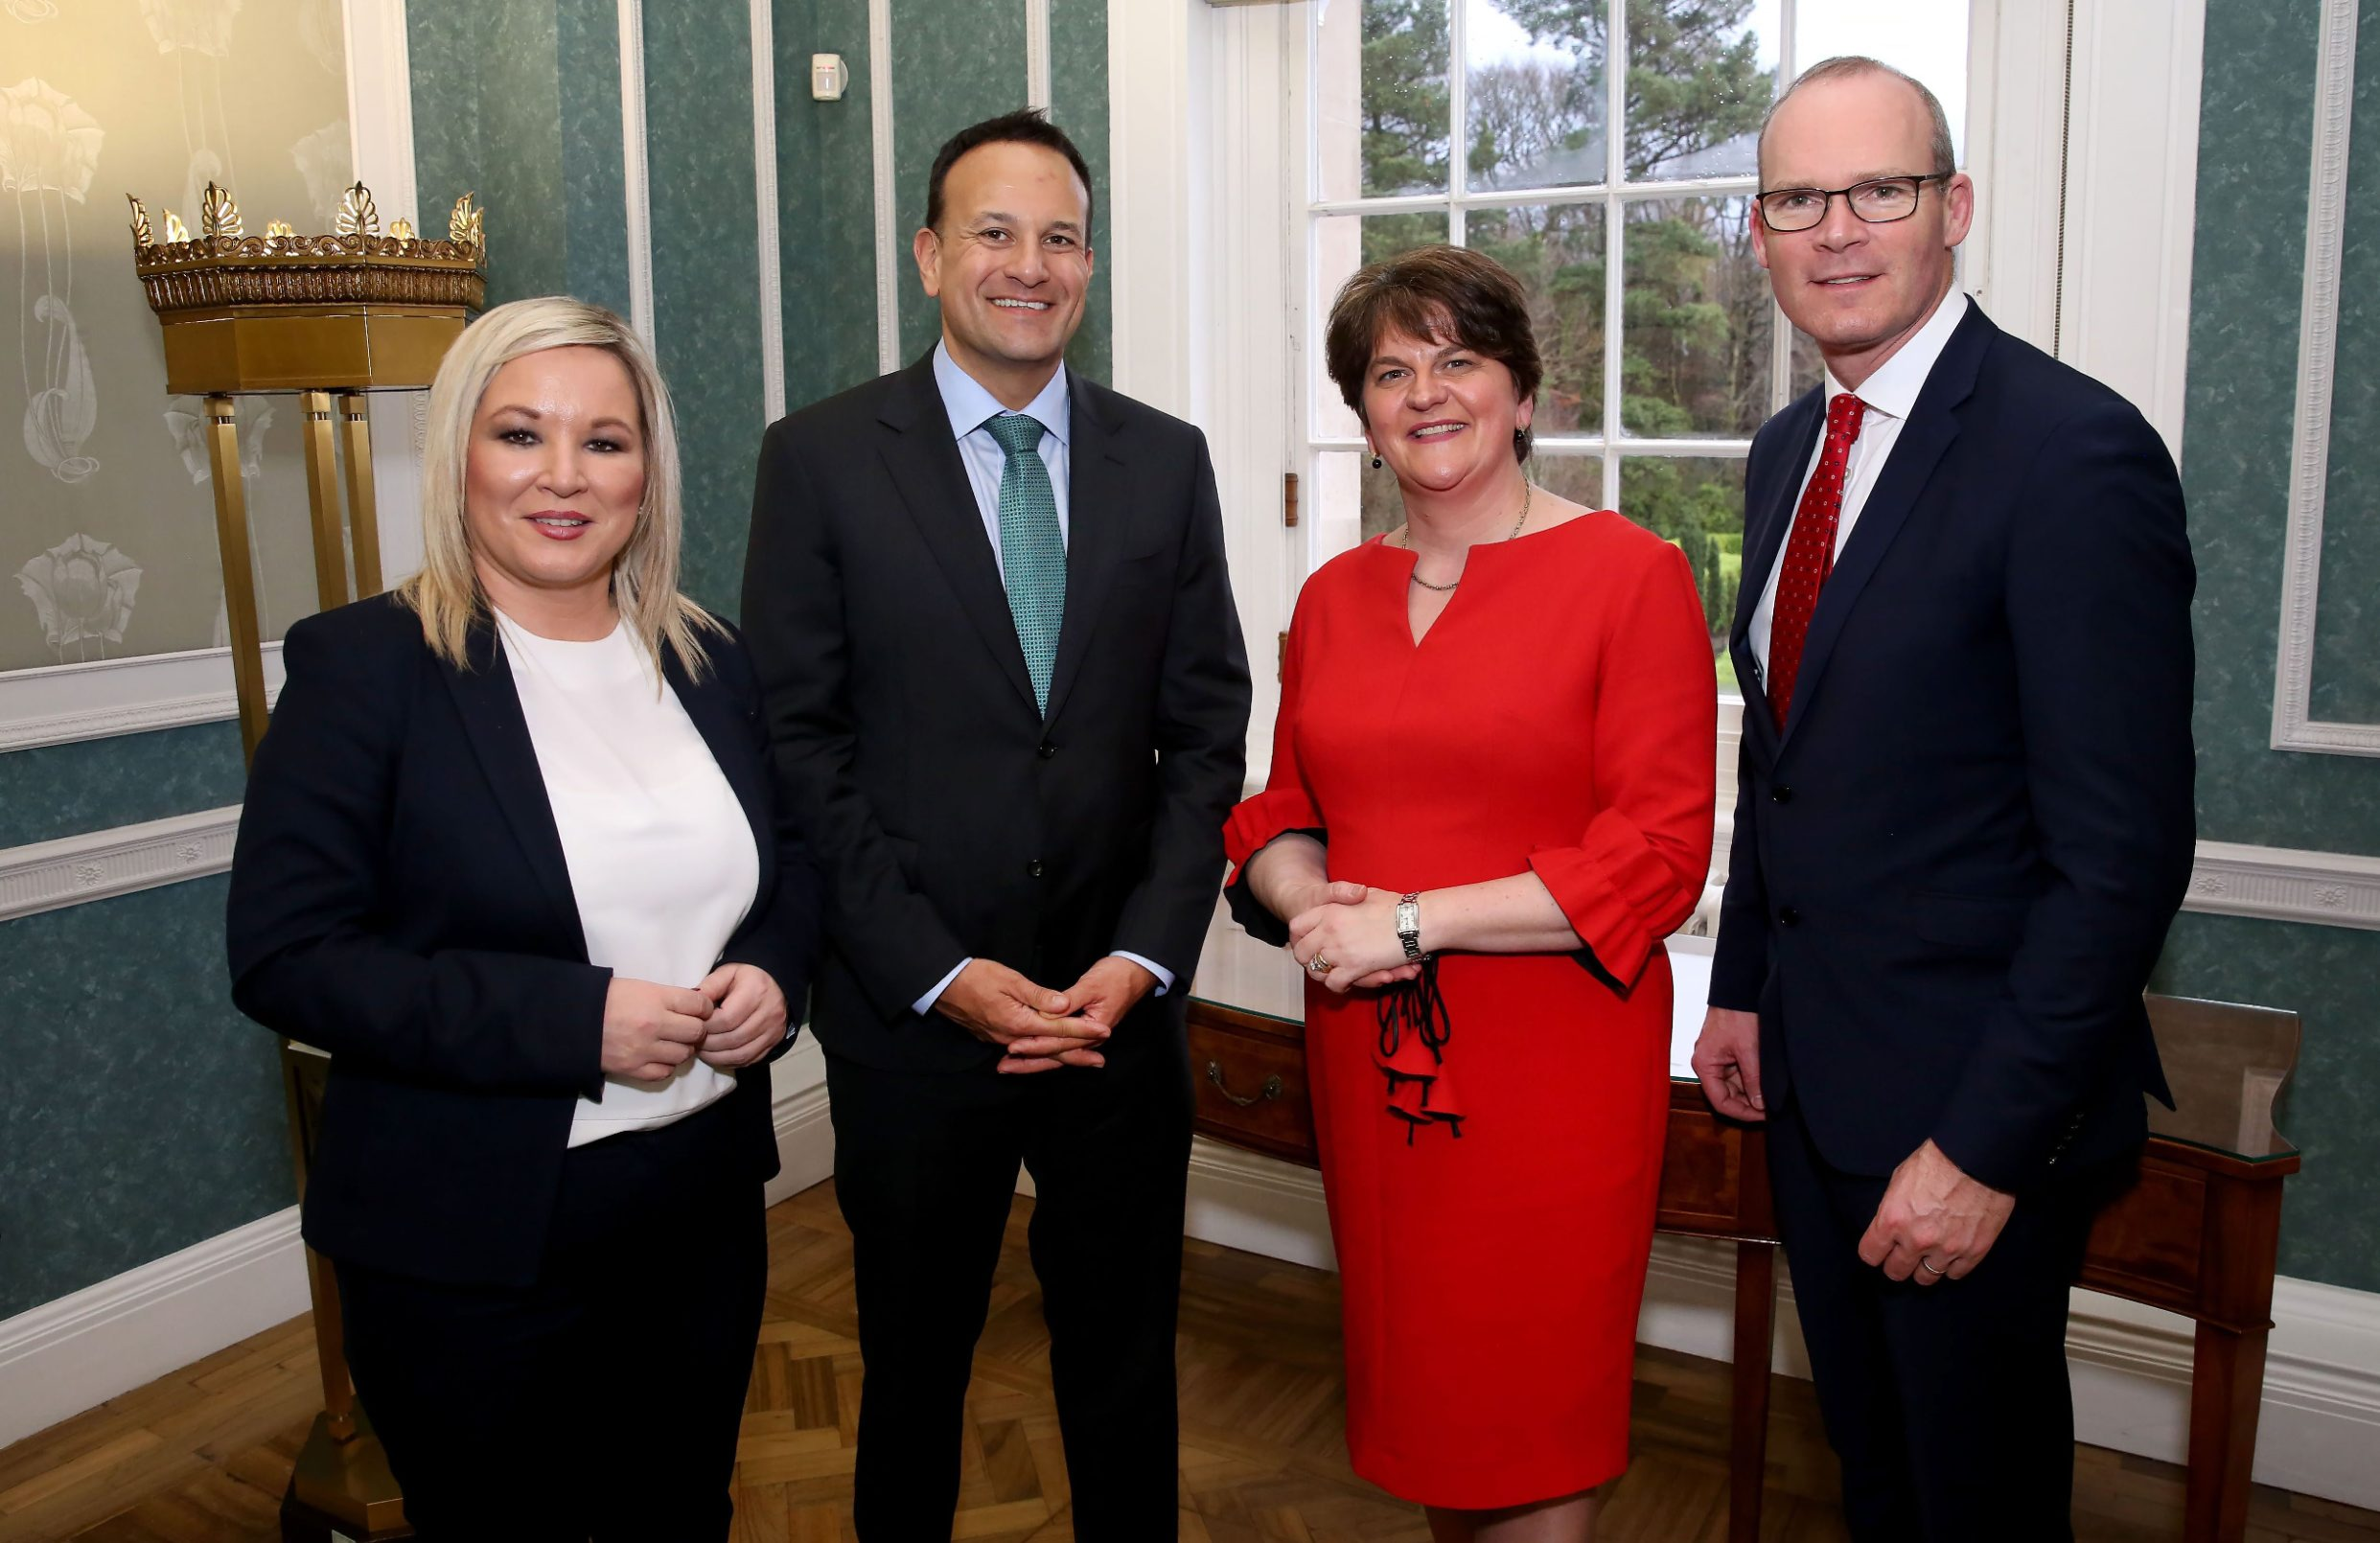 (L-R) Northern Ireland's Deputy First Minister Michelle O'Neill, Ireland's Prime Minister Leo Varadkar, Northern Ireland's First Minister Arlene Foster and Ireland's Foreign Minister Simon Coveney pose for a photograph at the Parliament Buildings, the seat of the of the Northern Ireland Assembly, on the Stormont Estate in Belfast on January 13, 2020. - British Prime Minister Boris Johnson promised a